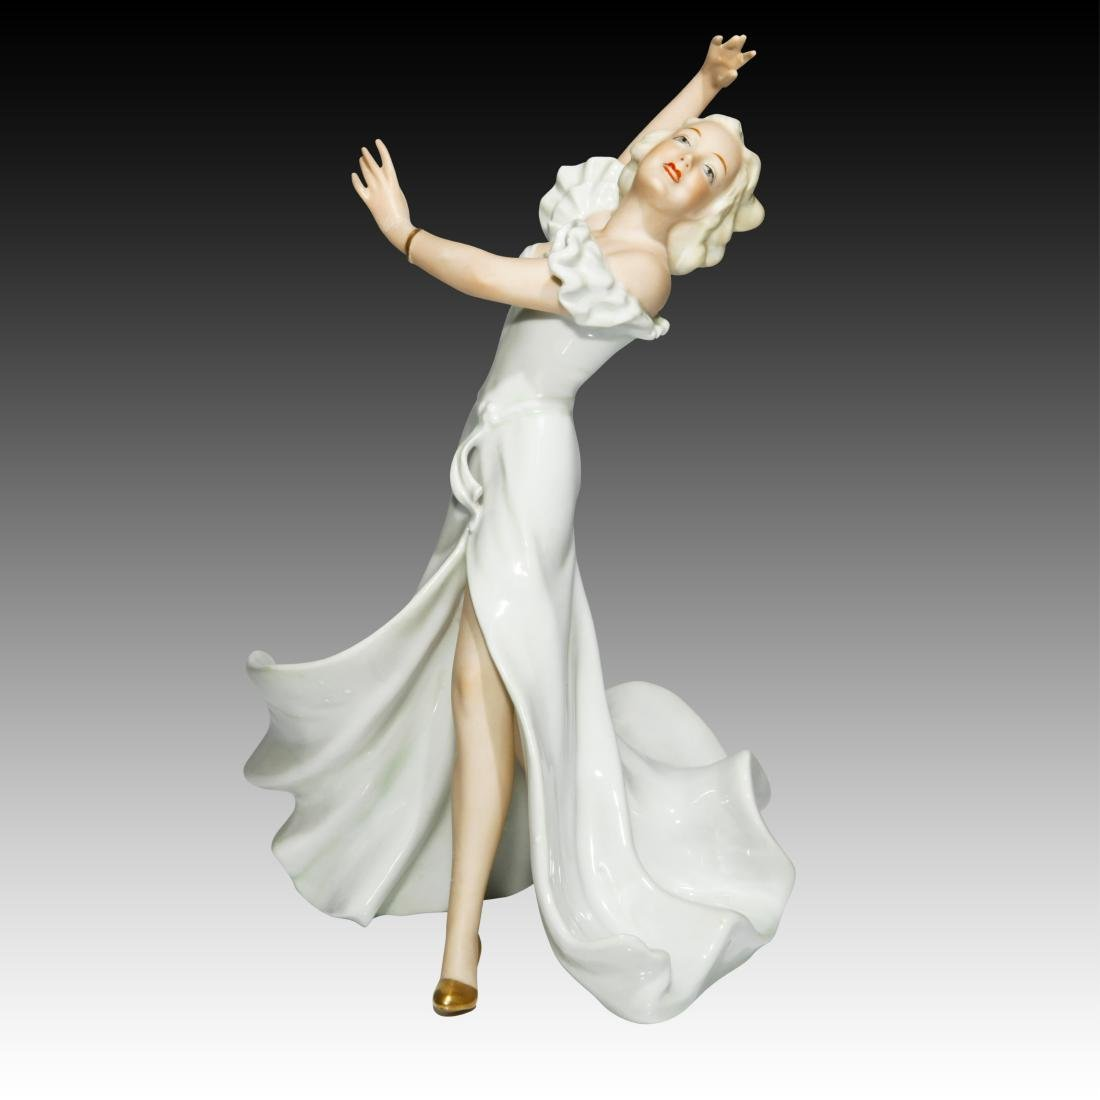 Wallendorf Female Art Deco Dancing Figurine